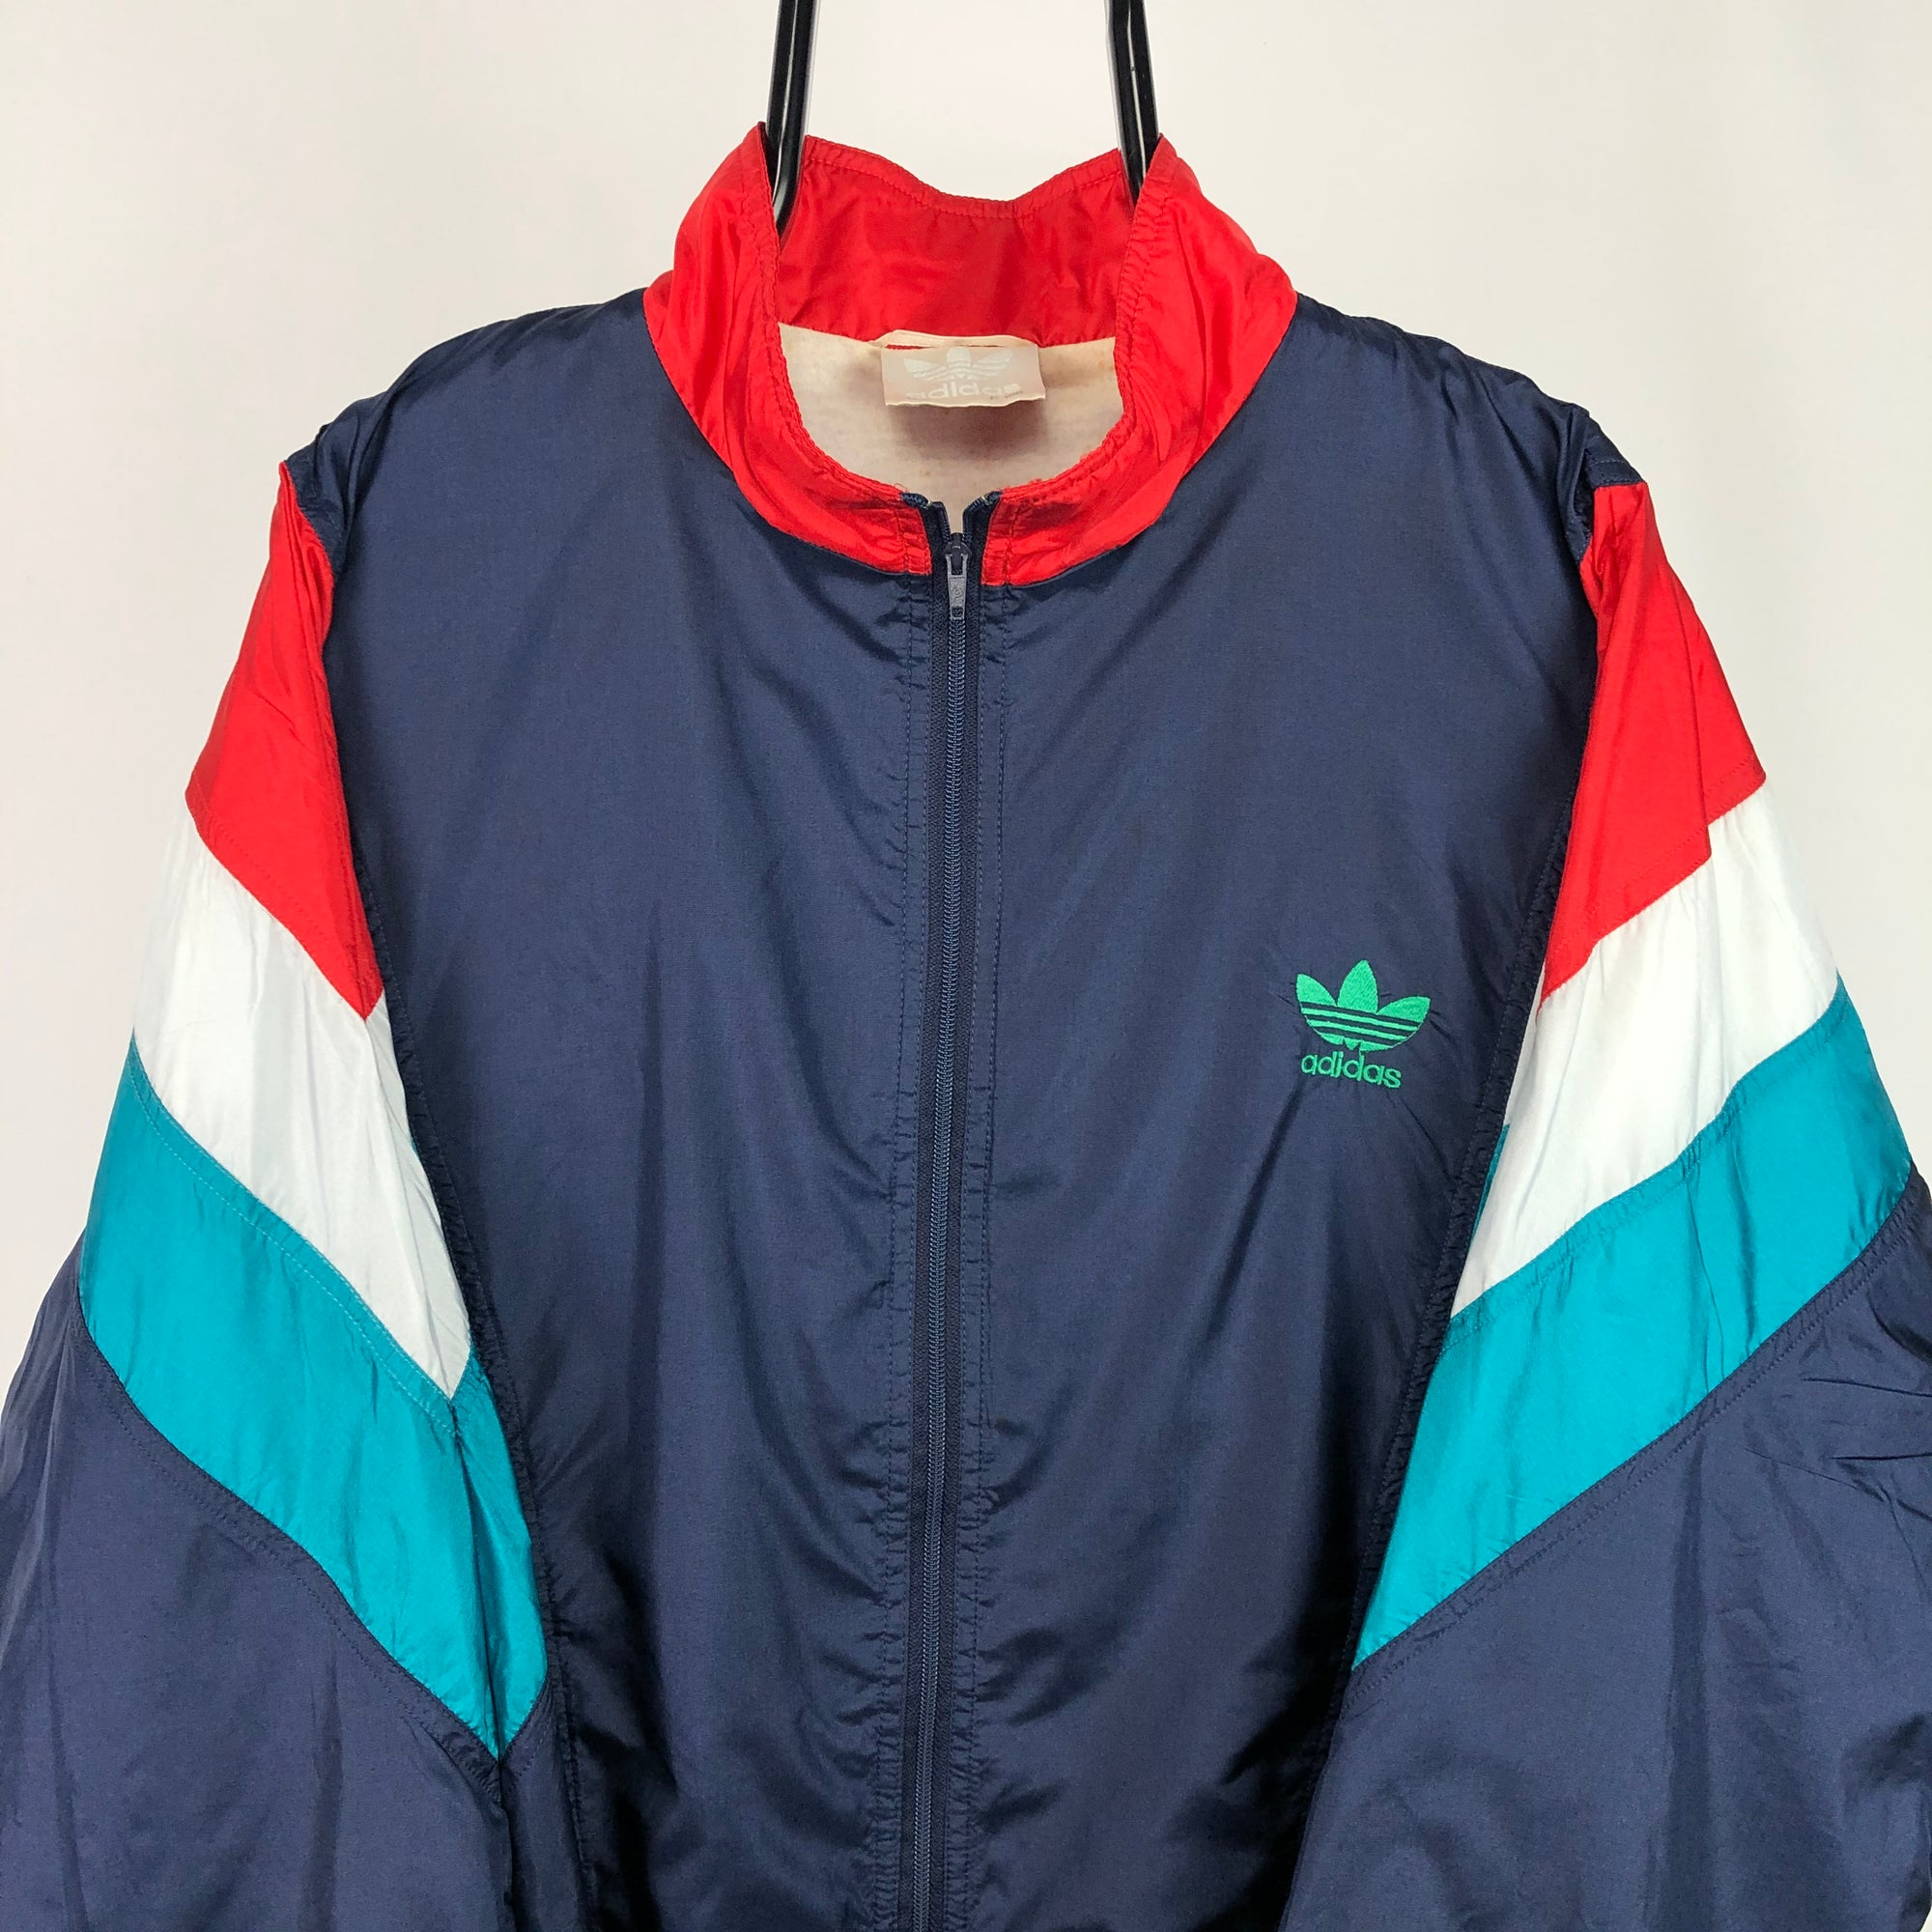 Vintage 80s Adidas Vertex Track Jacket - Men's XL/Women's XXL